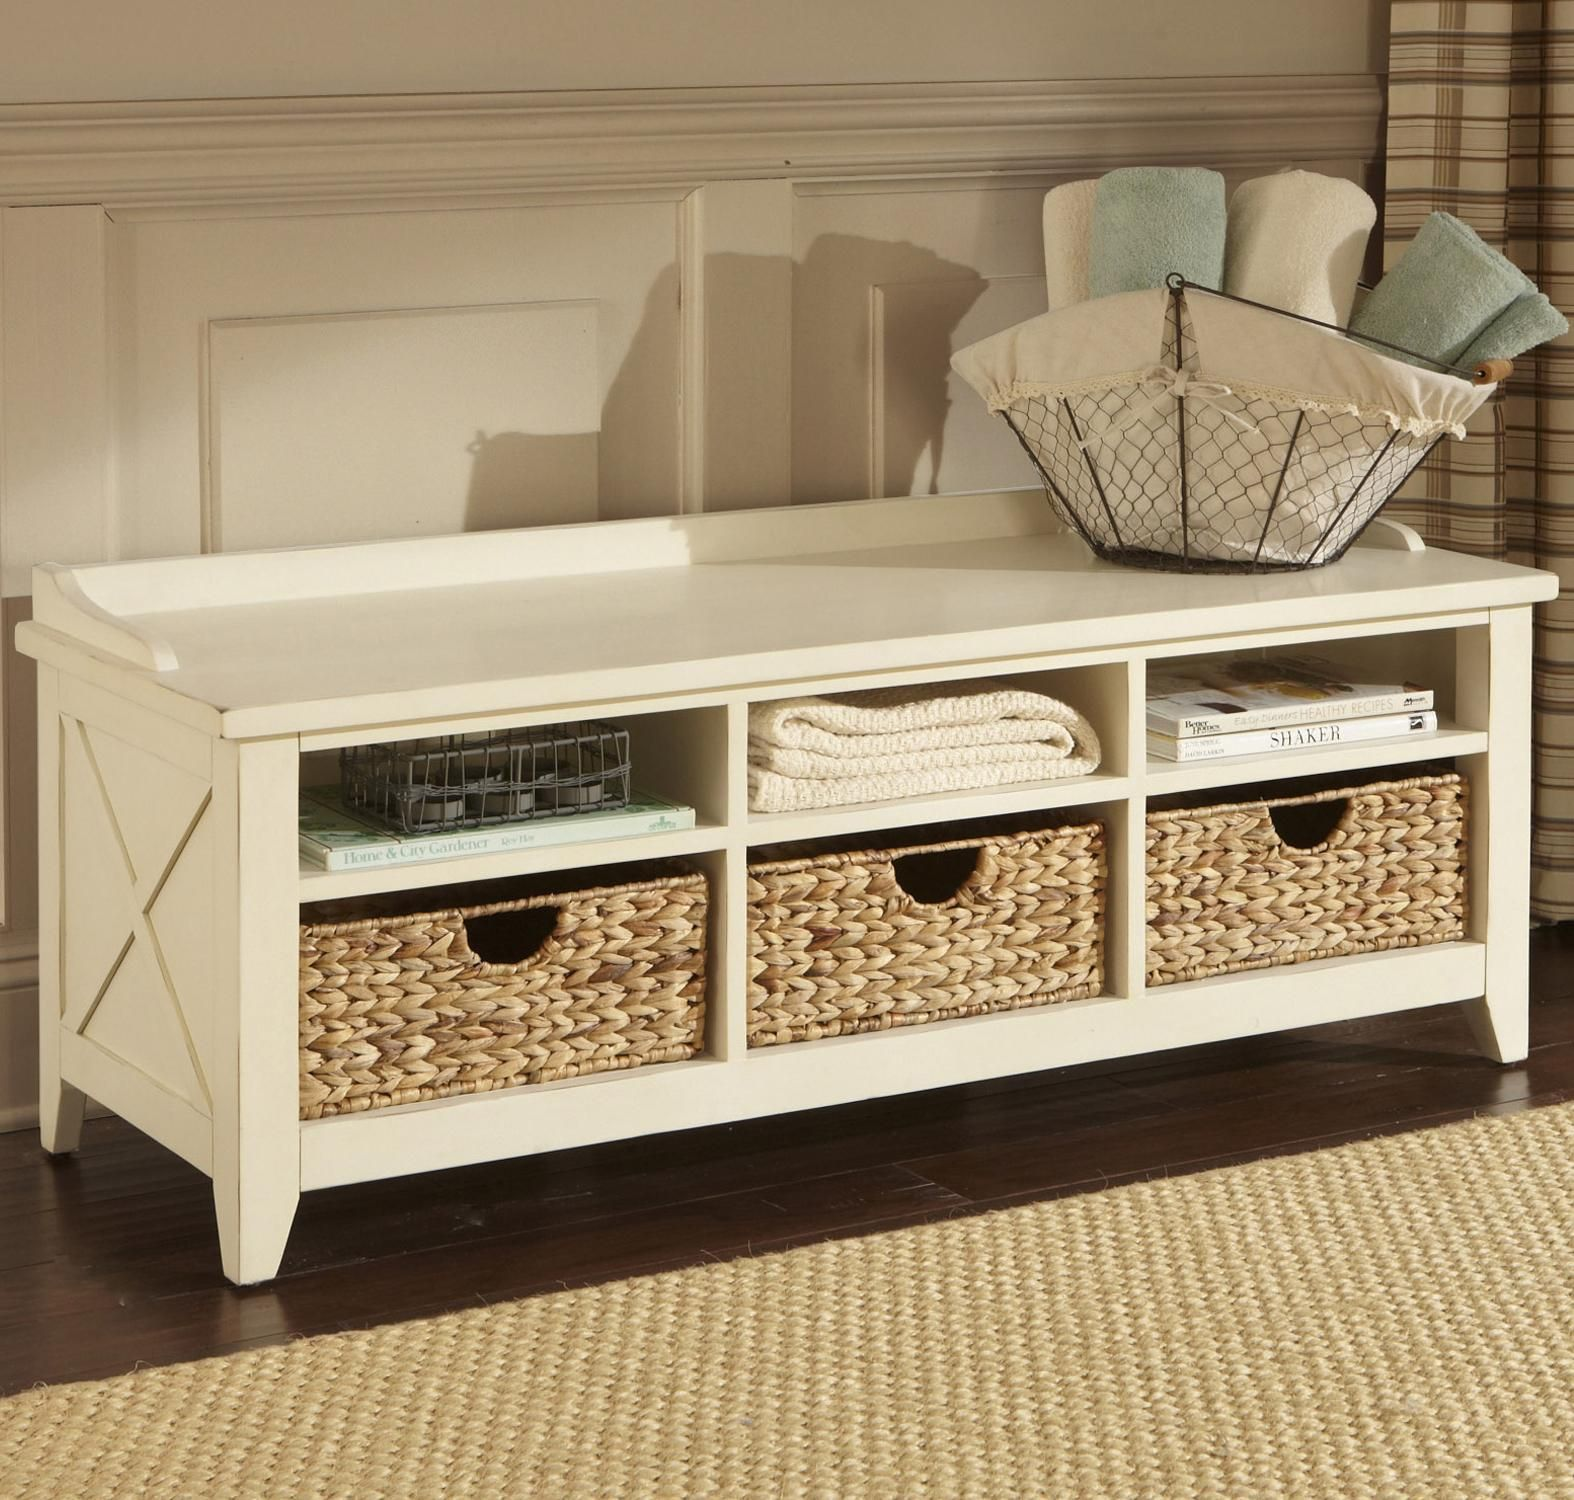 Perfect For A Small Entryway Hall Or Apartment This Storage Bench Offers A Stylish Greeting Into Your Home The X Motif An Storage Bench With Baskets Entryway Bench Storage Bench With Storage